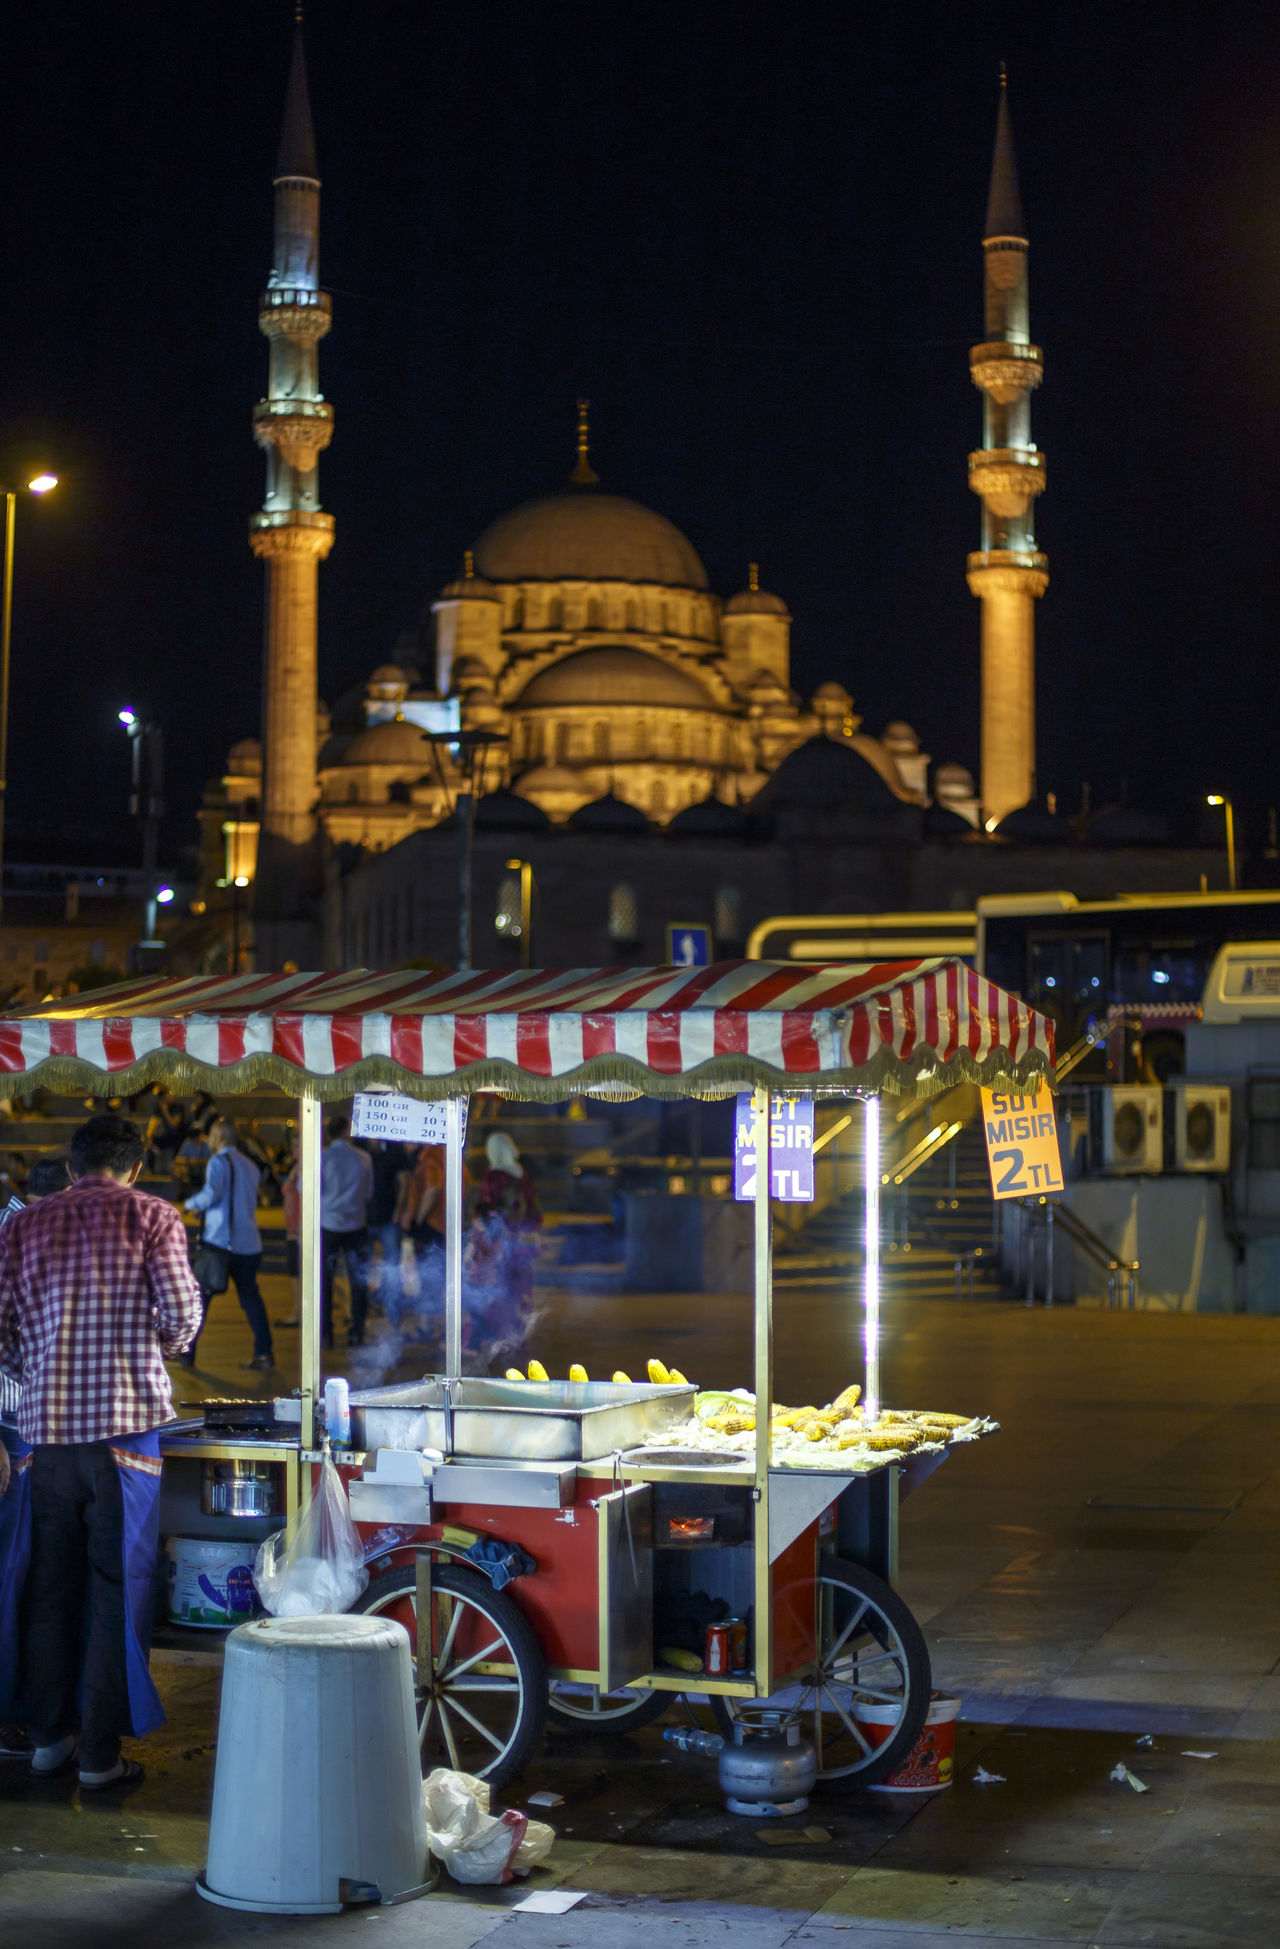 Roasted corn cart - Istanbul, Turkey Architecture Cart City City Life Cityscapes Corn Snake Eminünü Islam Islamic Islamic Architecture Istanbul Istanbul City Istanbul Turkey Learn & Shoot: After Dark Mosque Night Nightlife Roasted Corn Roasted Corn Cart Traffic Lights Trafficlight